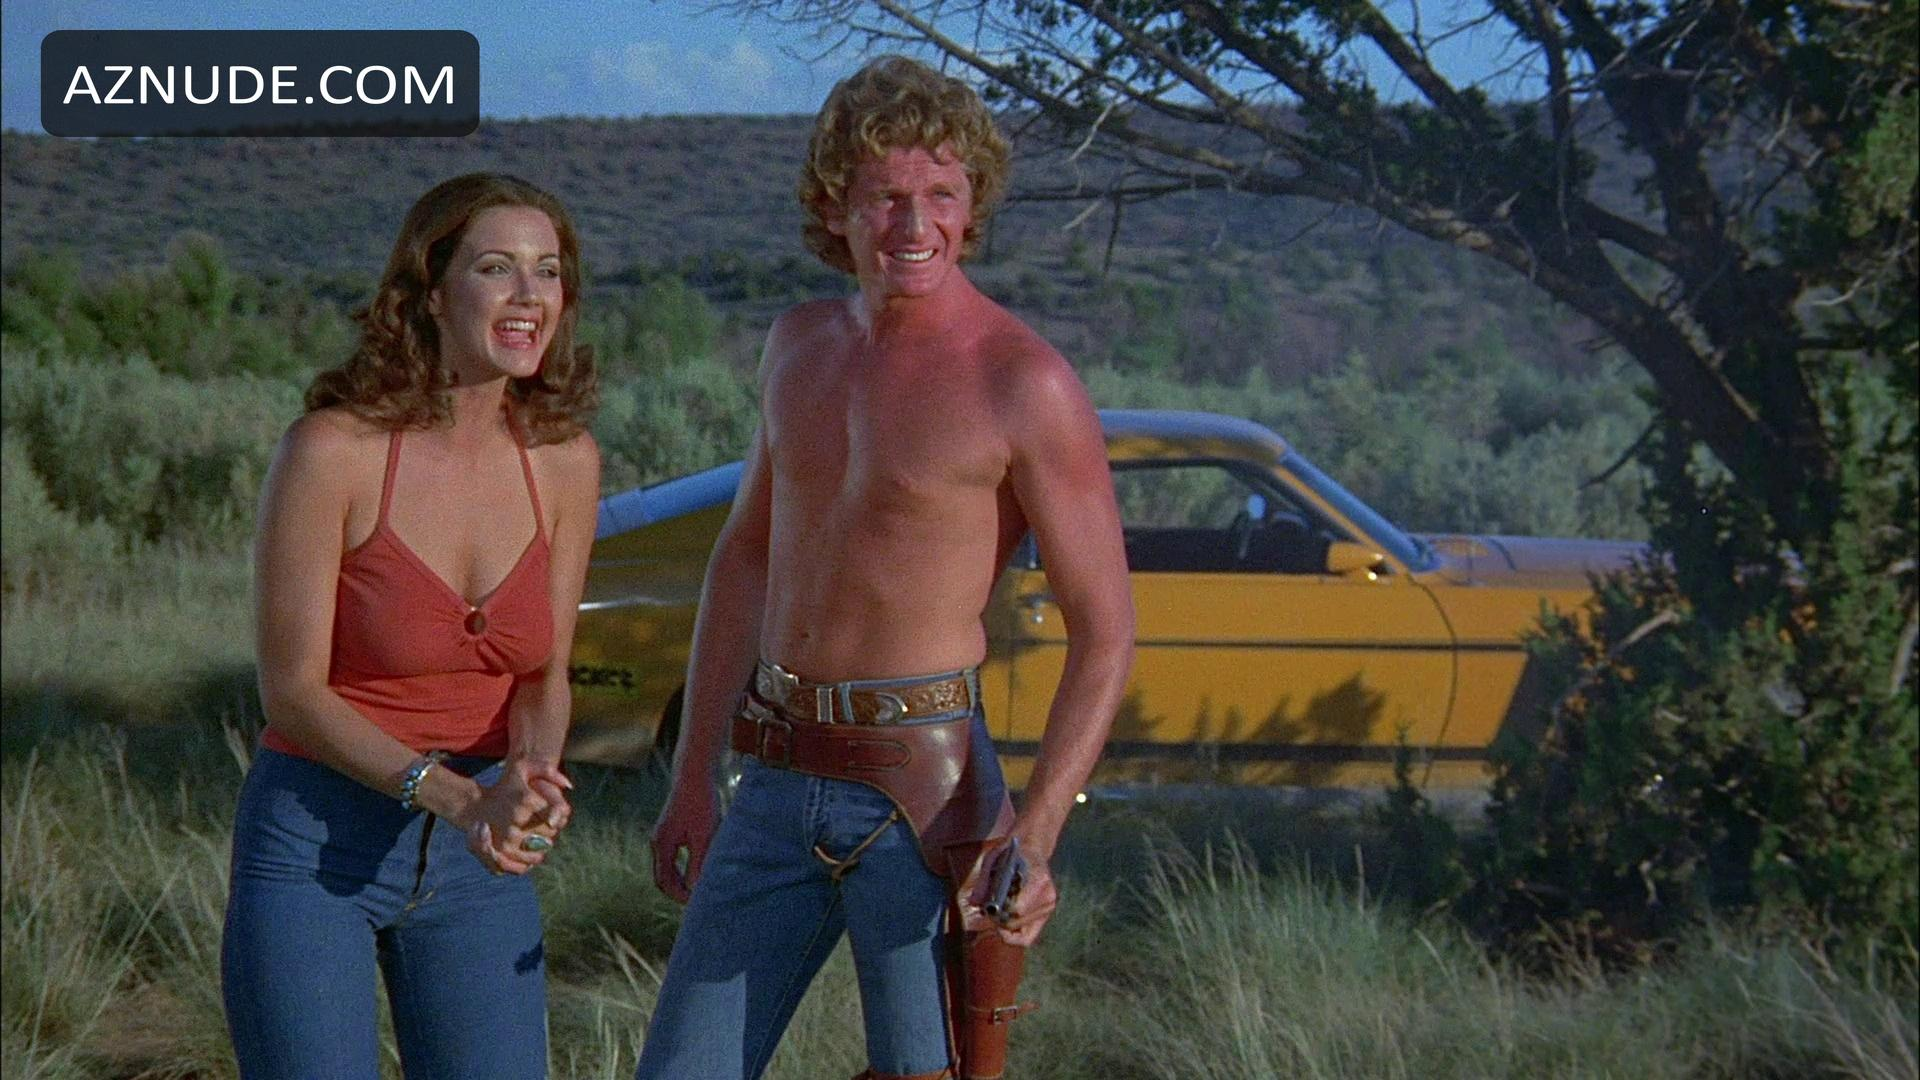 bobbie jo and the outlaw nude scenes